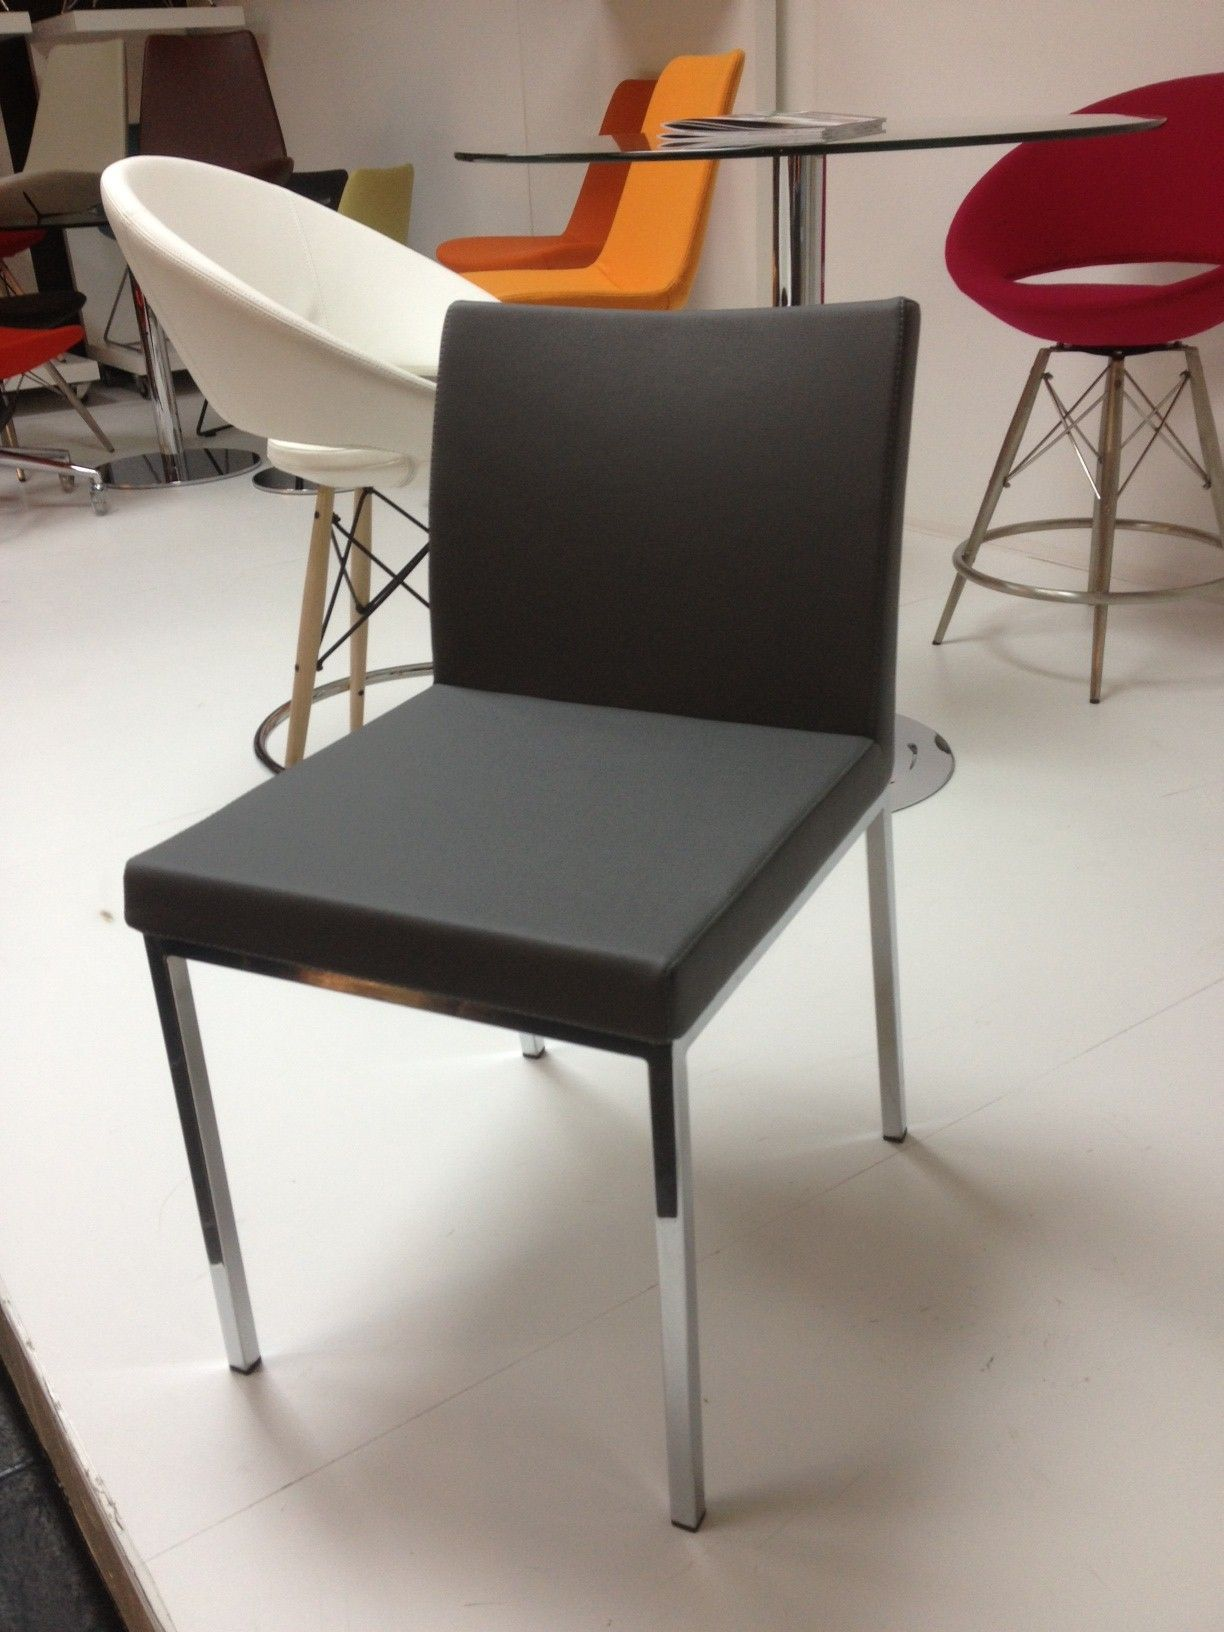 Contemporary Gray Dining Room Chair | Furniture Toronto & Contemporary Gray Dining Room Chair | Furniture Toronto | ideas ...